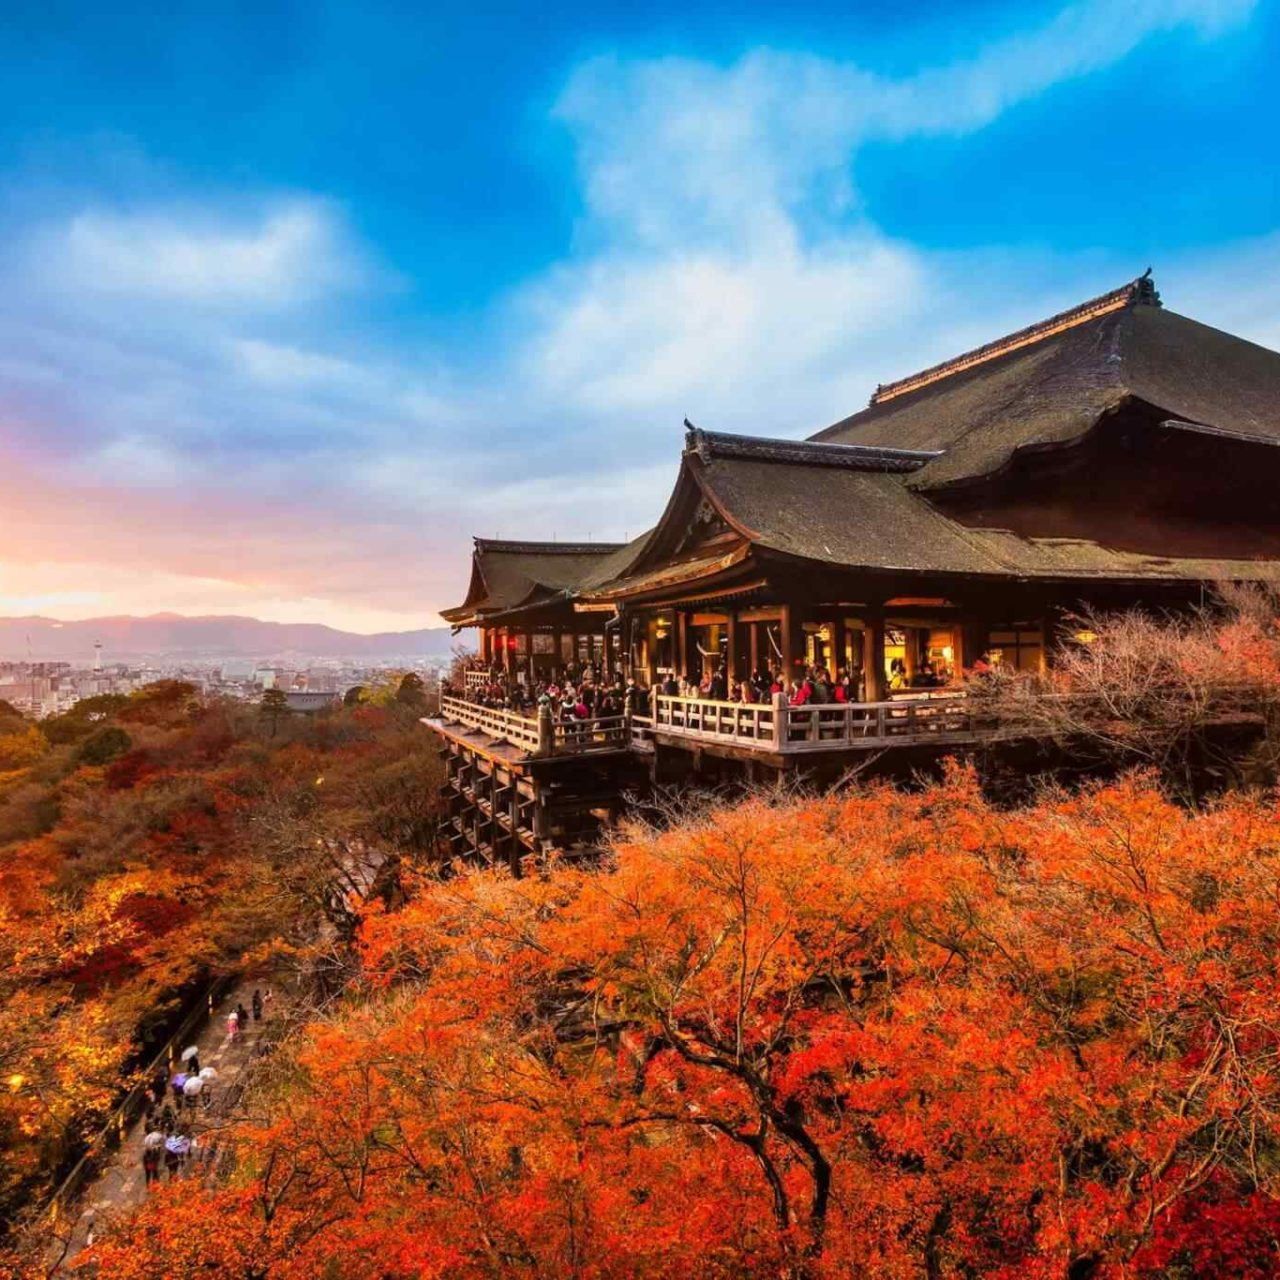 https://www.banitours.com/wp-content/uploads/2018/09/destination-kyoto-01-1280x1280.jpg